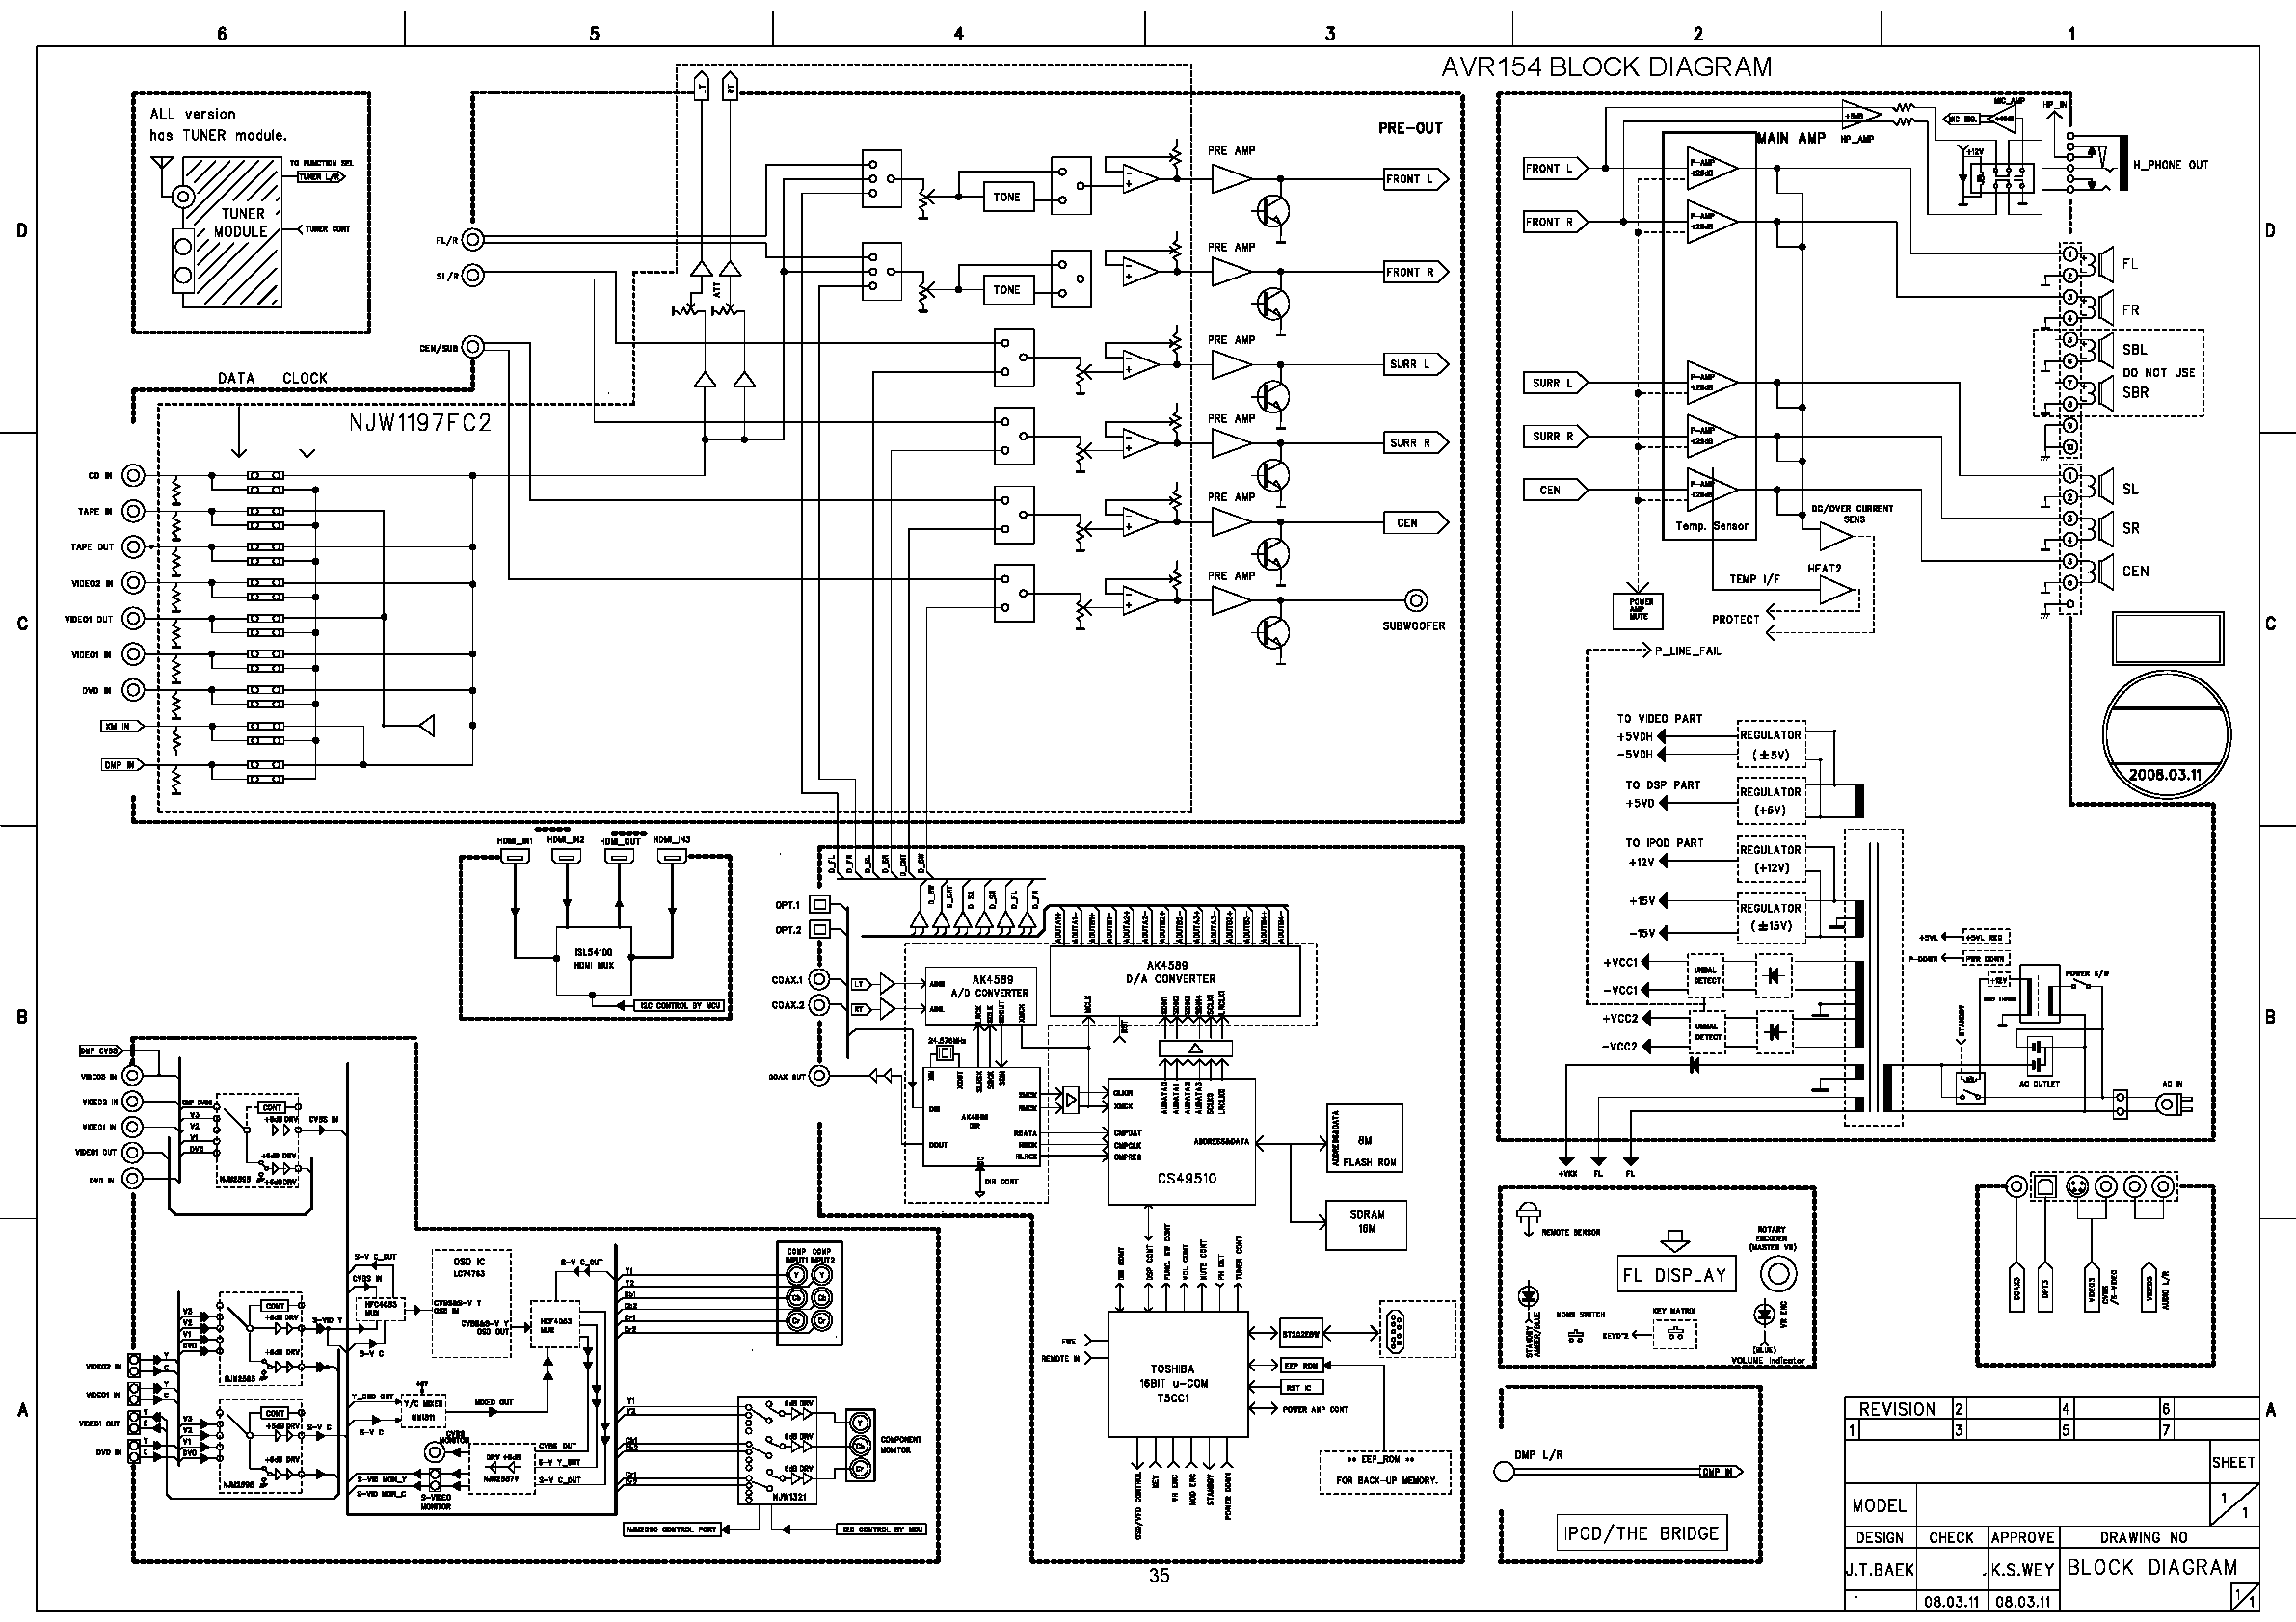 1997 jeep wrangler wiring diagram pdf with Chevy Fuel Sender Wiring Diagram on 2004 Dodge Durango Fuse Box Diagram further Oil Pressure Sending Unit Location 90996 furthermore RepairGuideContent as well 1997 Ford Probe Wiring Diagram Harness also Mazda Protege Daytime Running Light Drl Wiring Diagram.